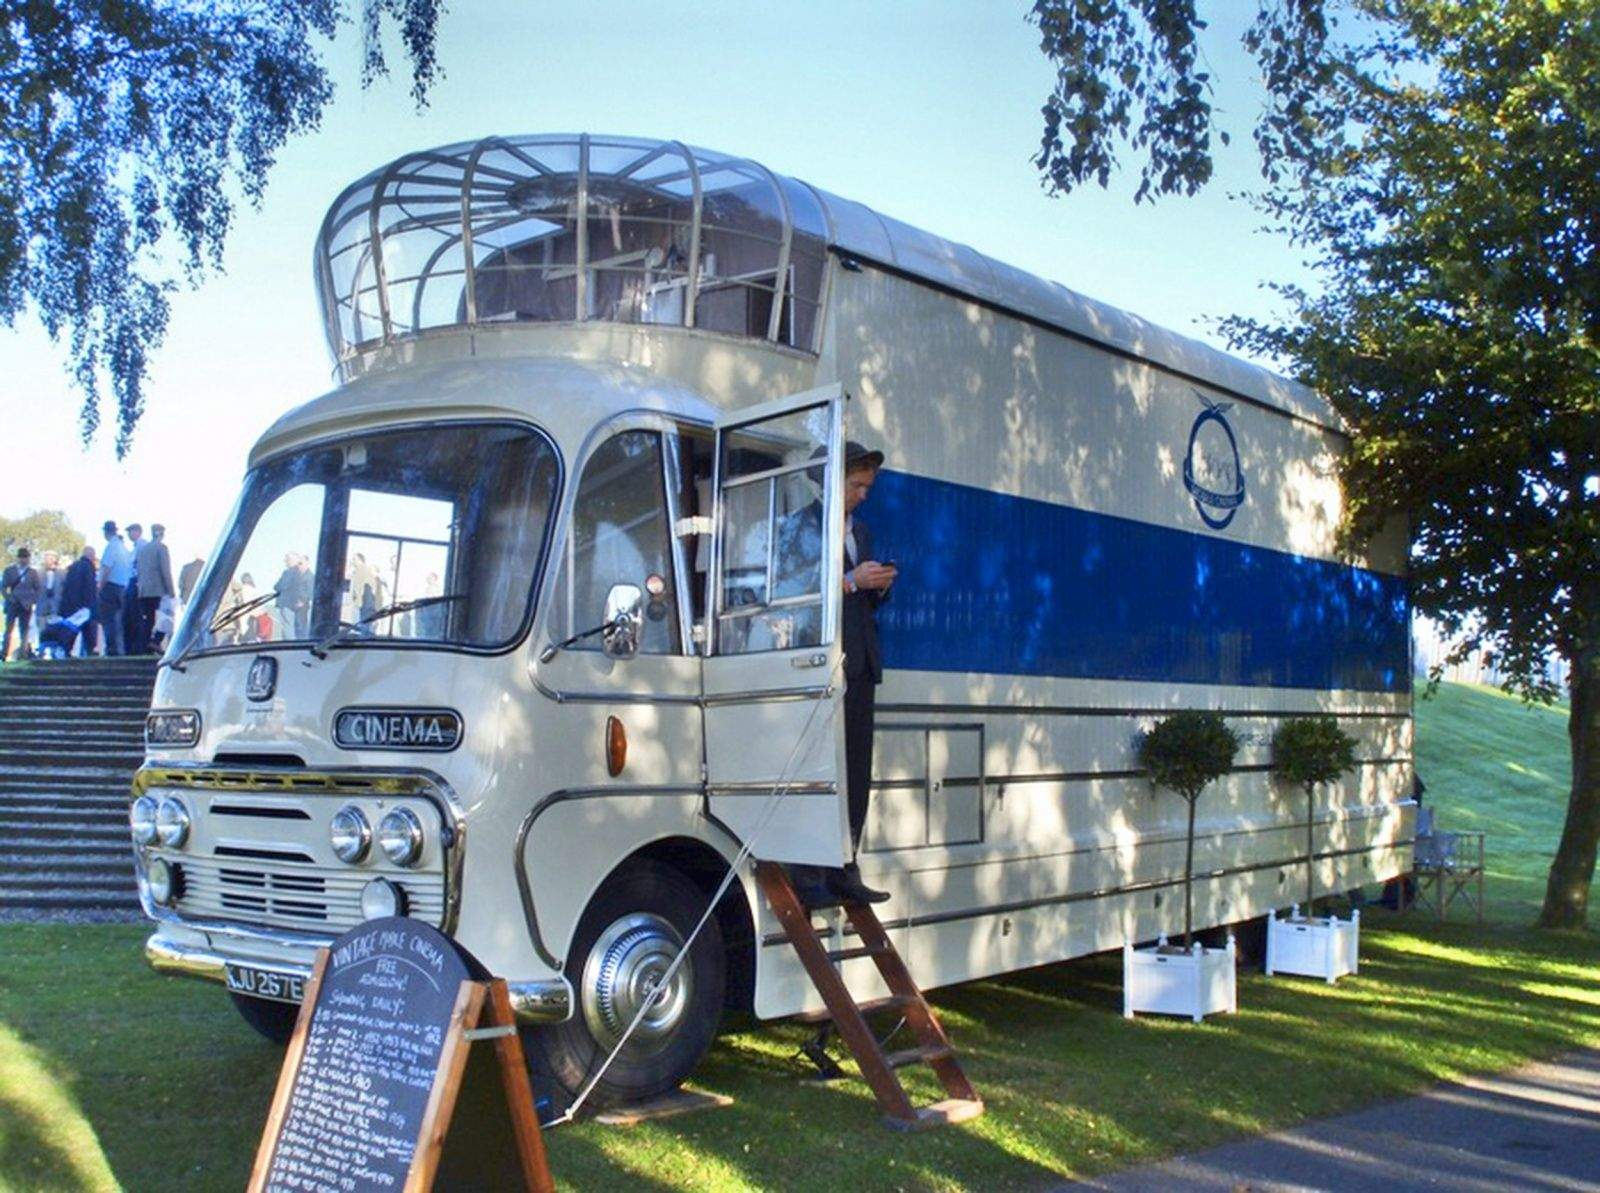 Britain's last mobile cinema, one of seven buses built by the government in the 1960s to promote modern manufacturing, is for sale on eBay. Photo: Jane Sanders